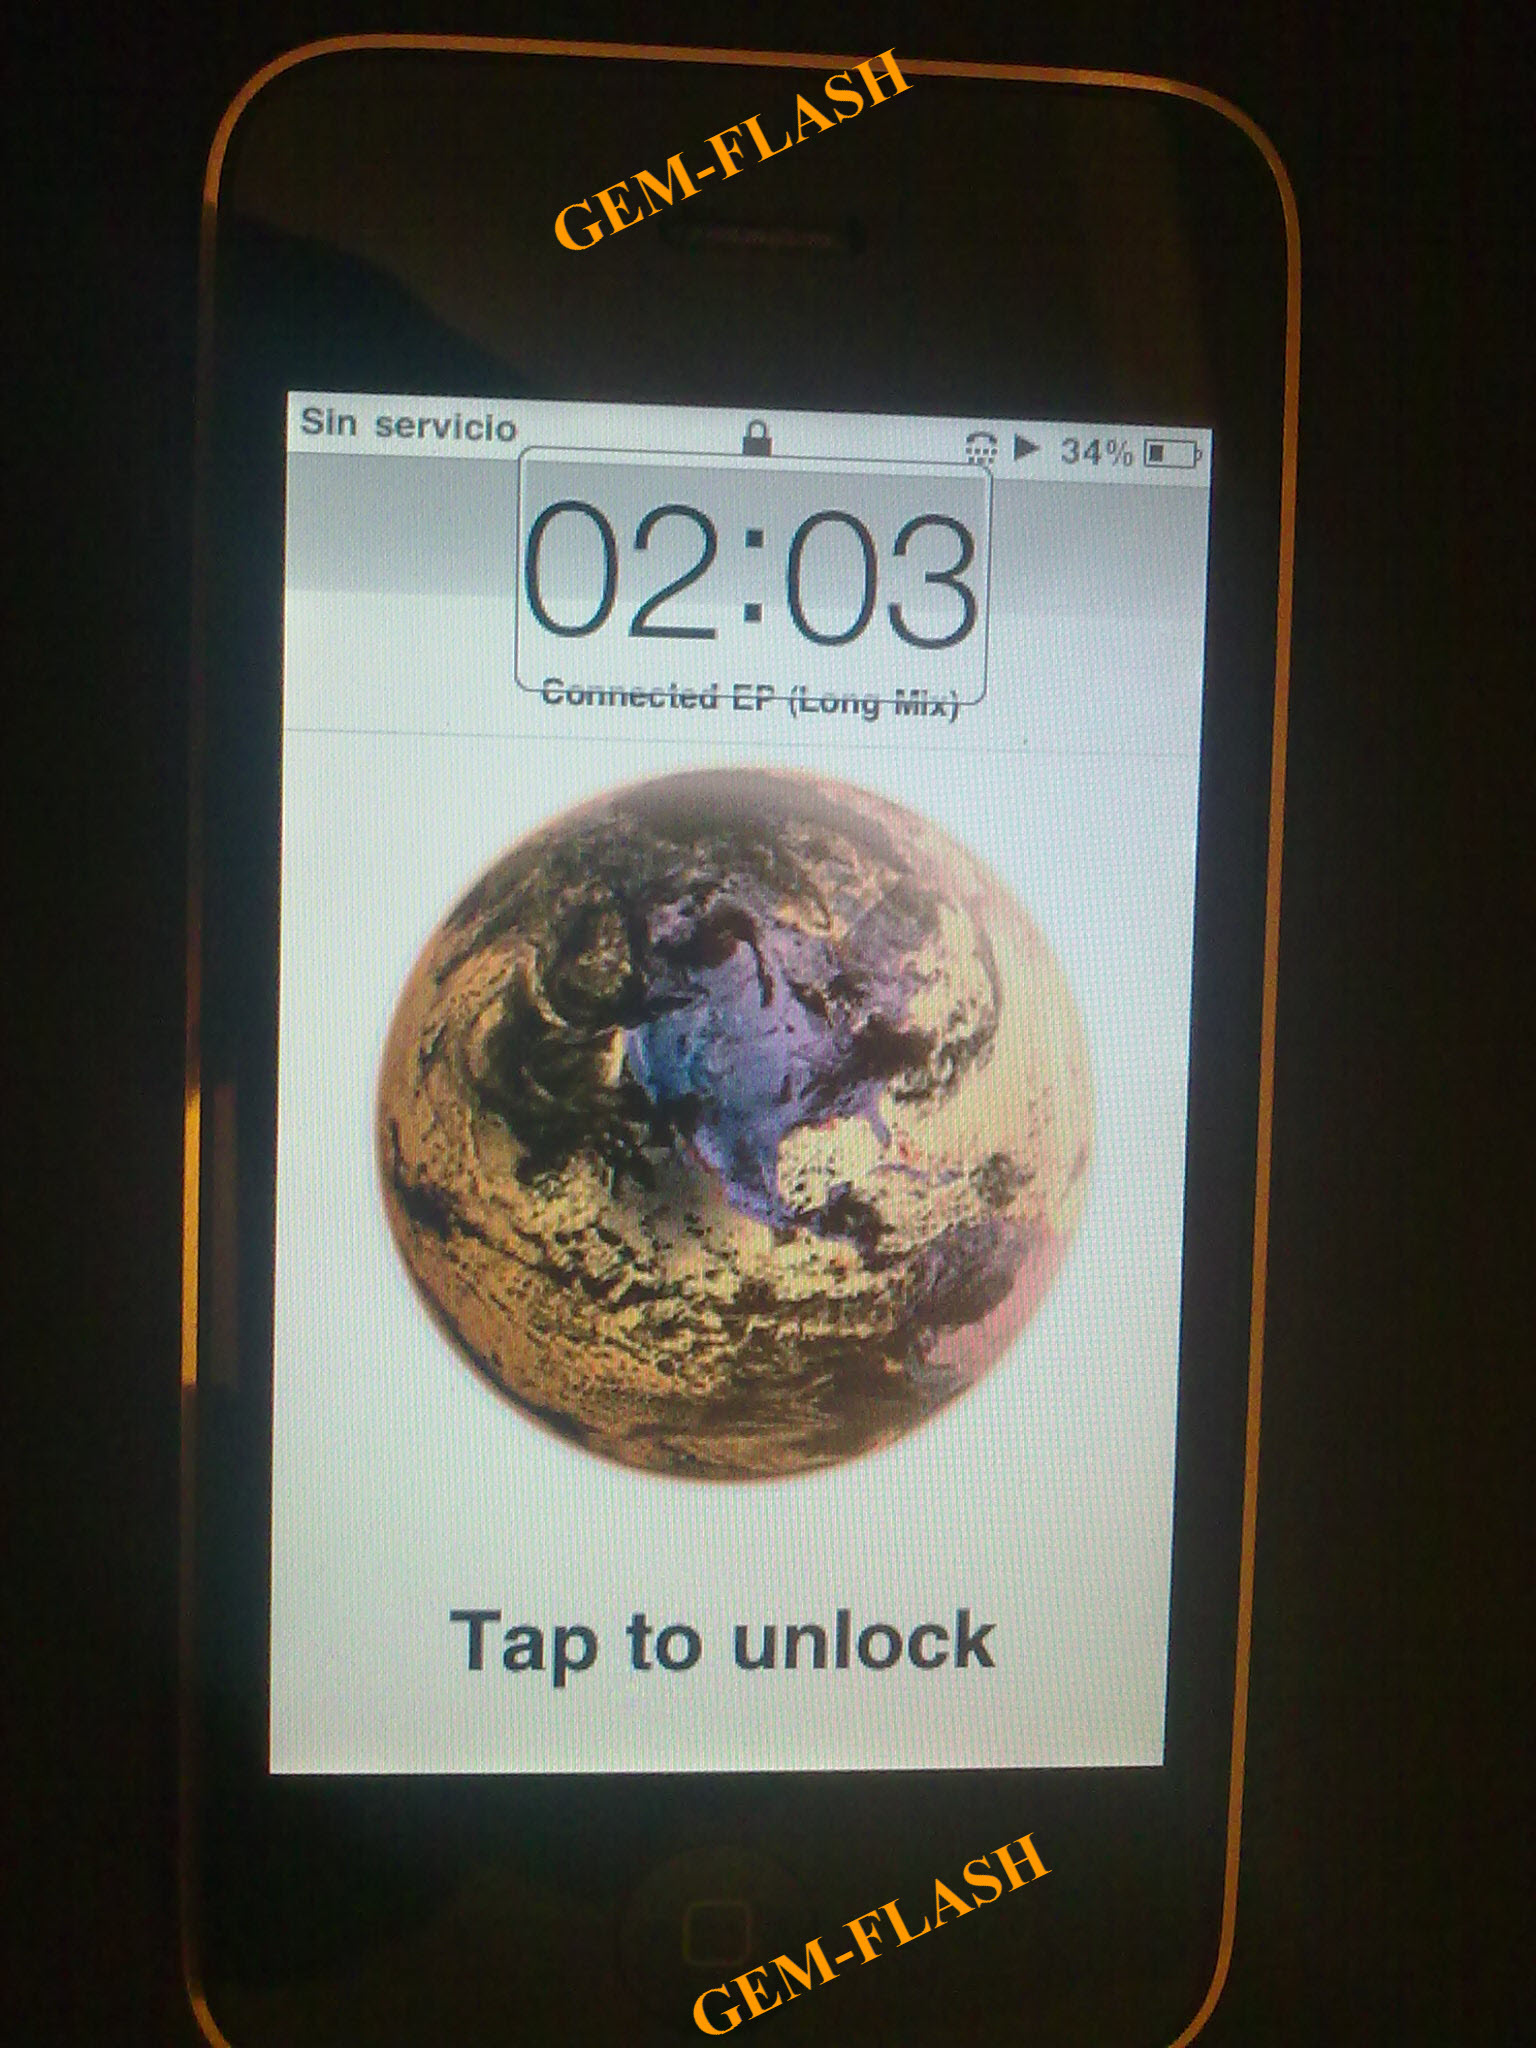 iPHONE 32gb ...Tap to unlock